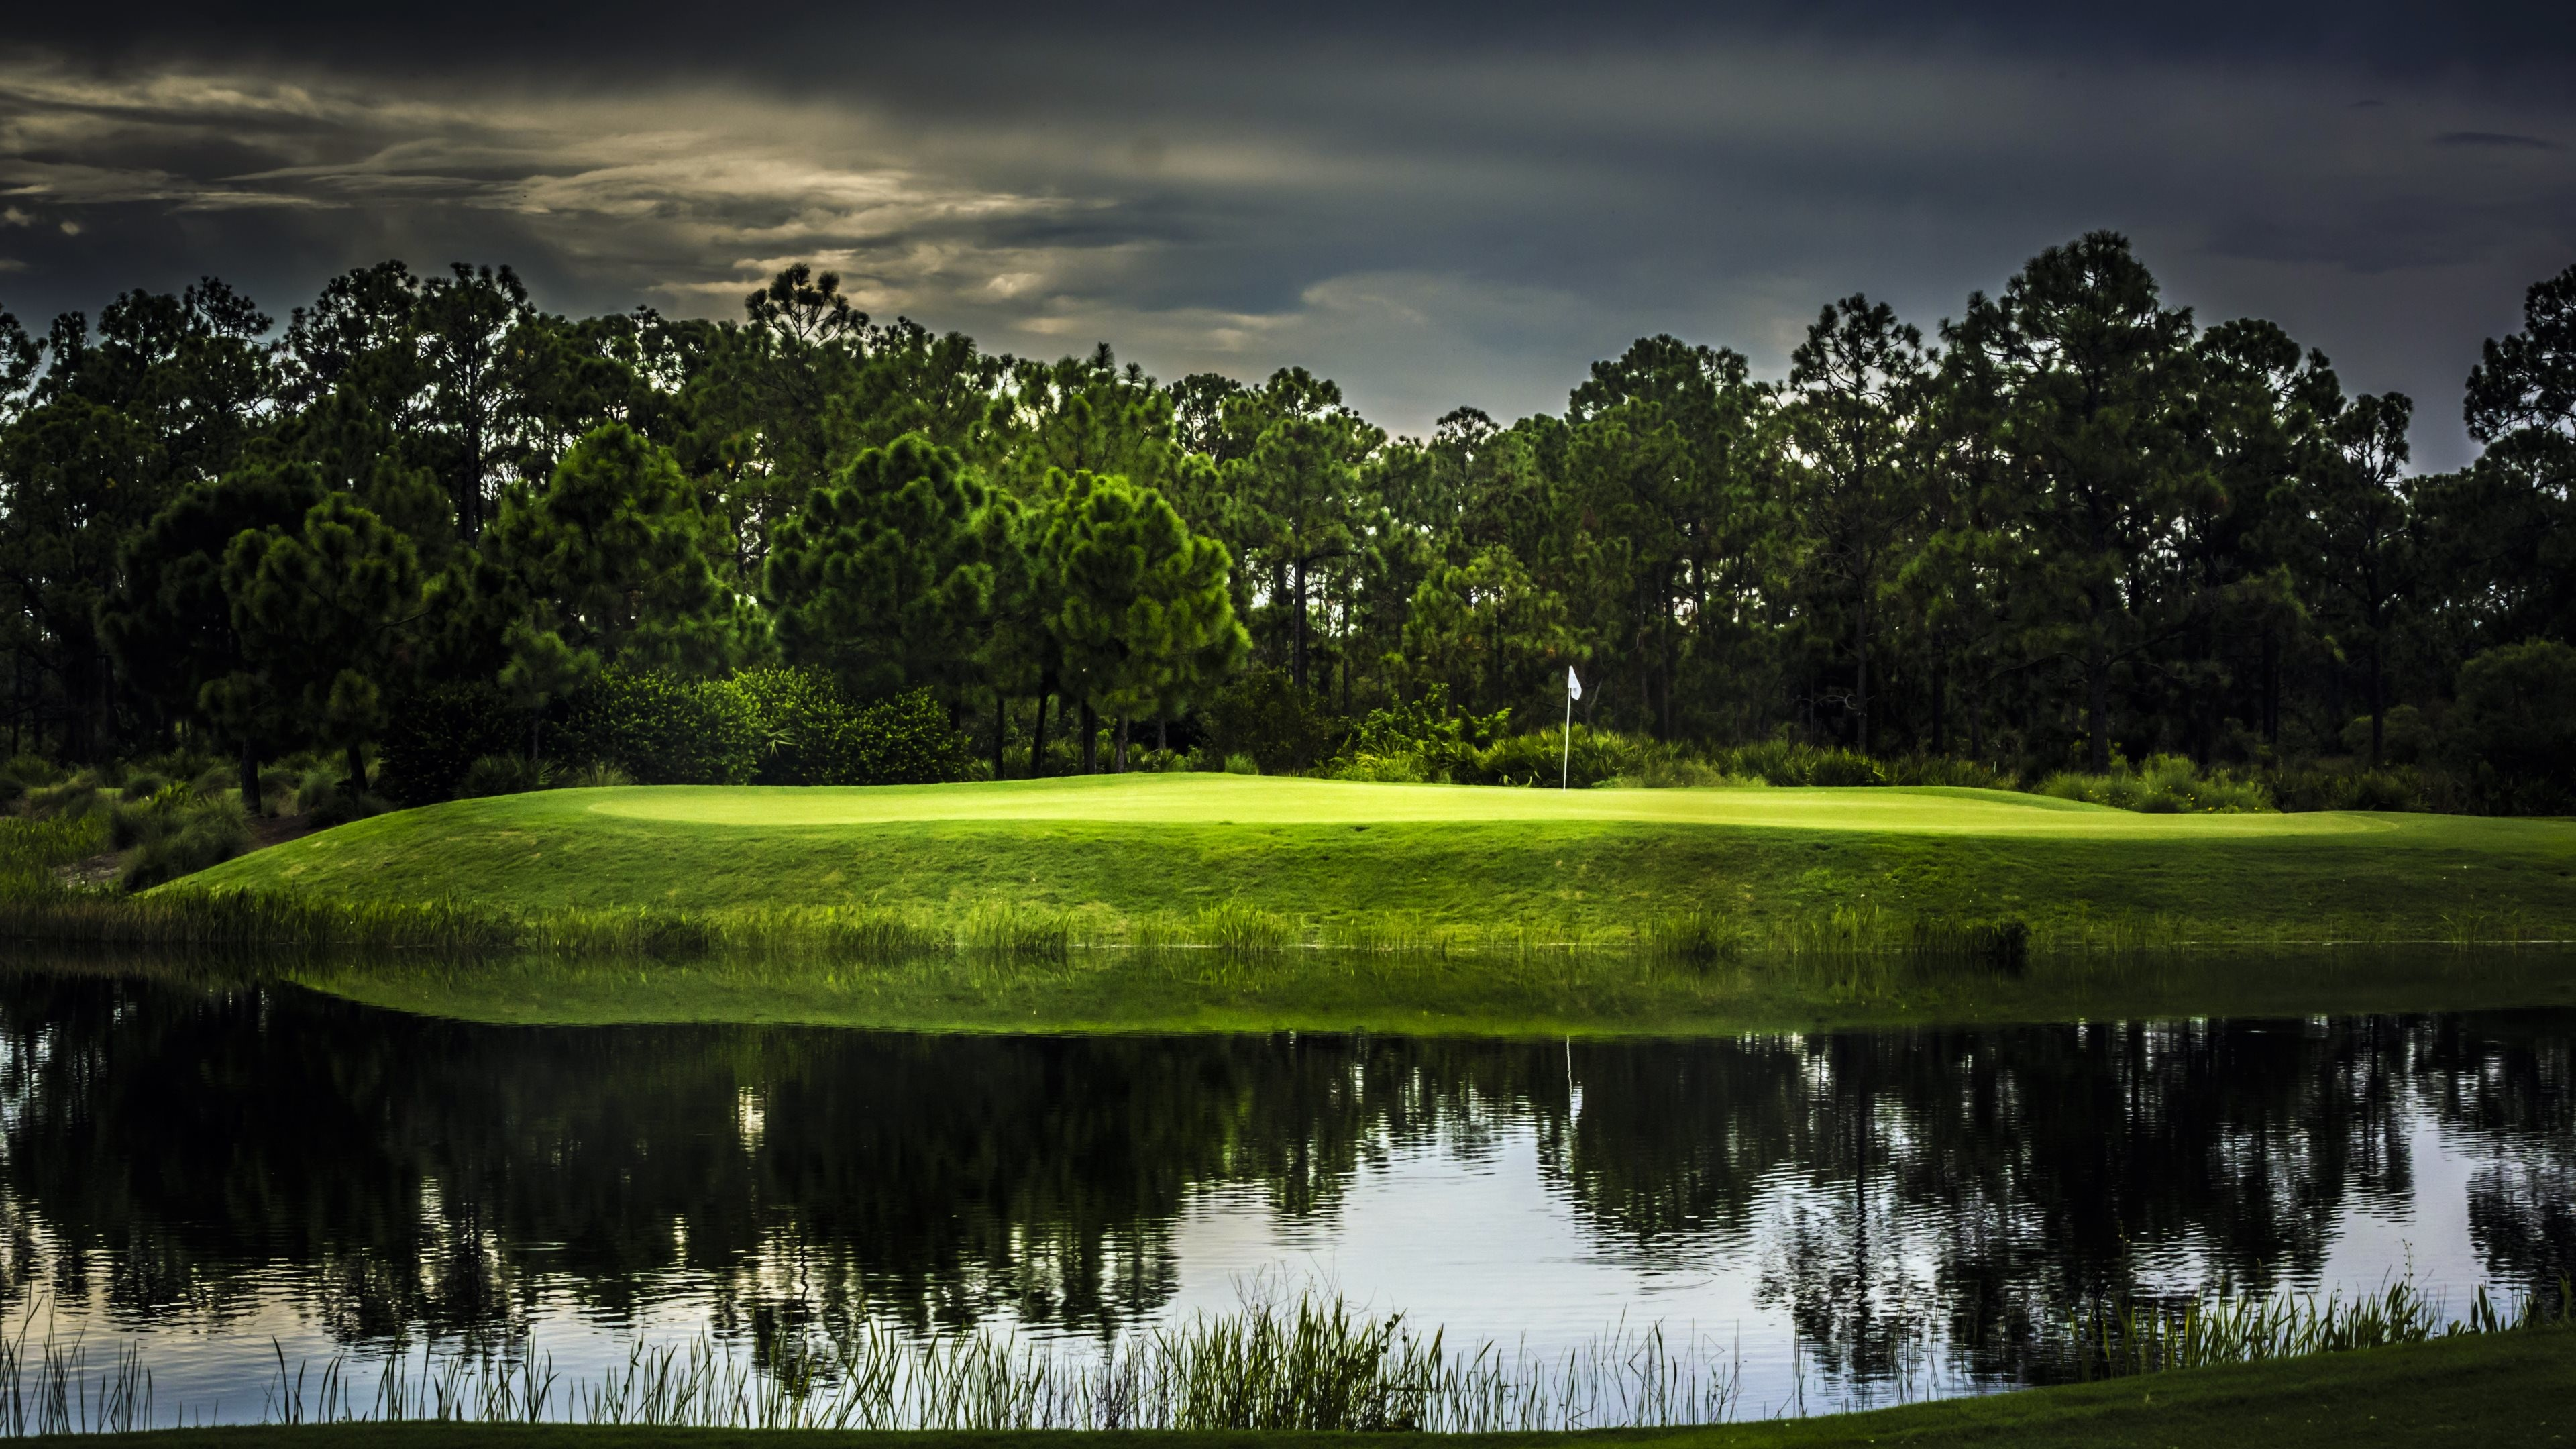 Res: 3840x2160, hd-golf-desktop-wallpaper